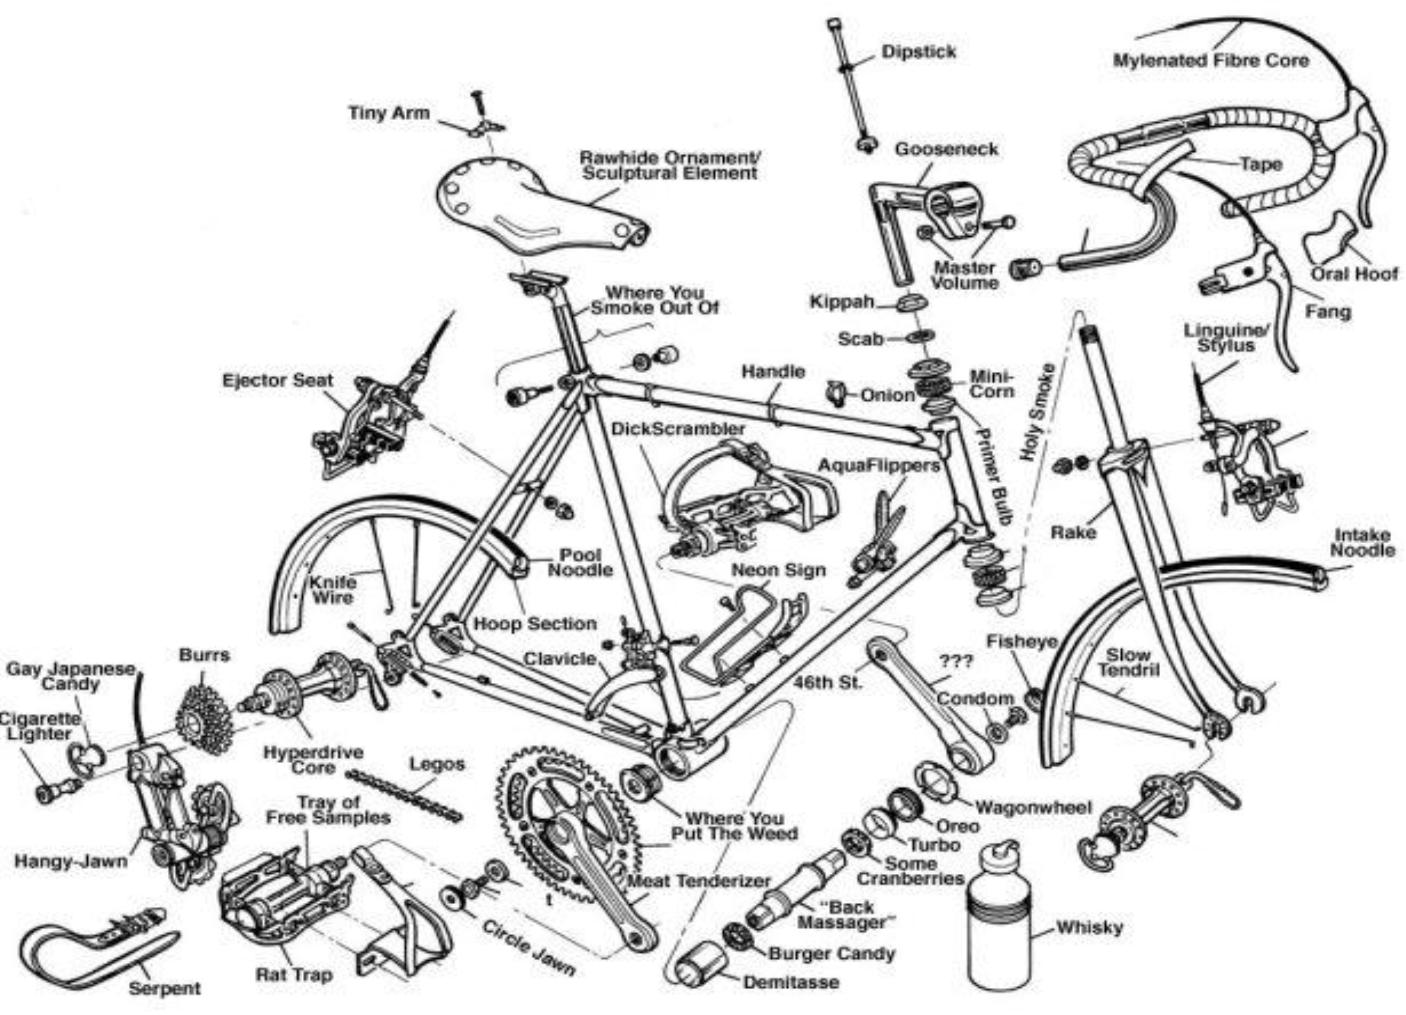 The Many Parts Of The Bicycle Www Funrunrobbie Co Uk